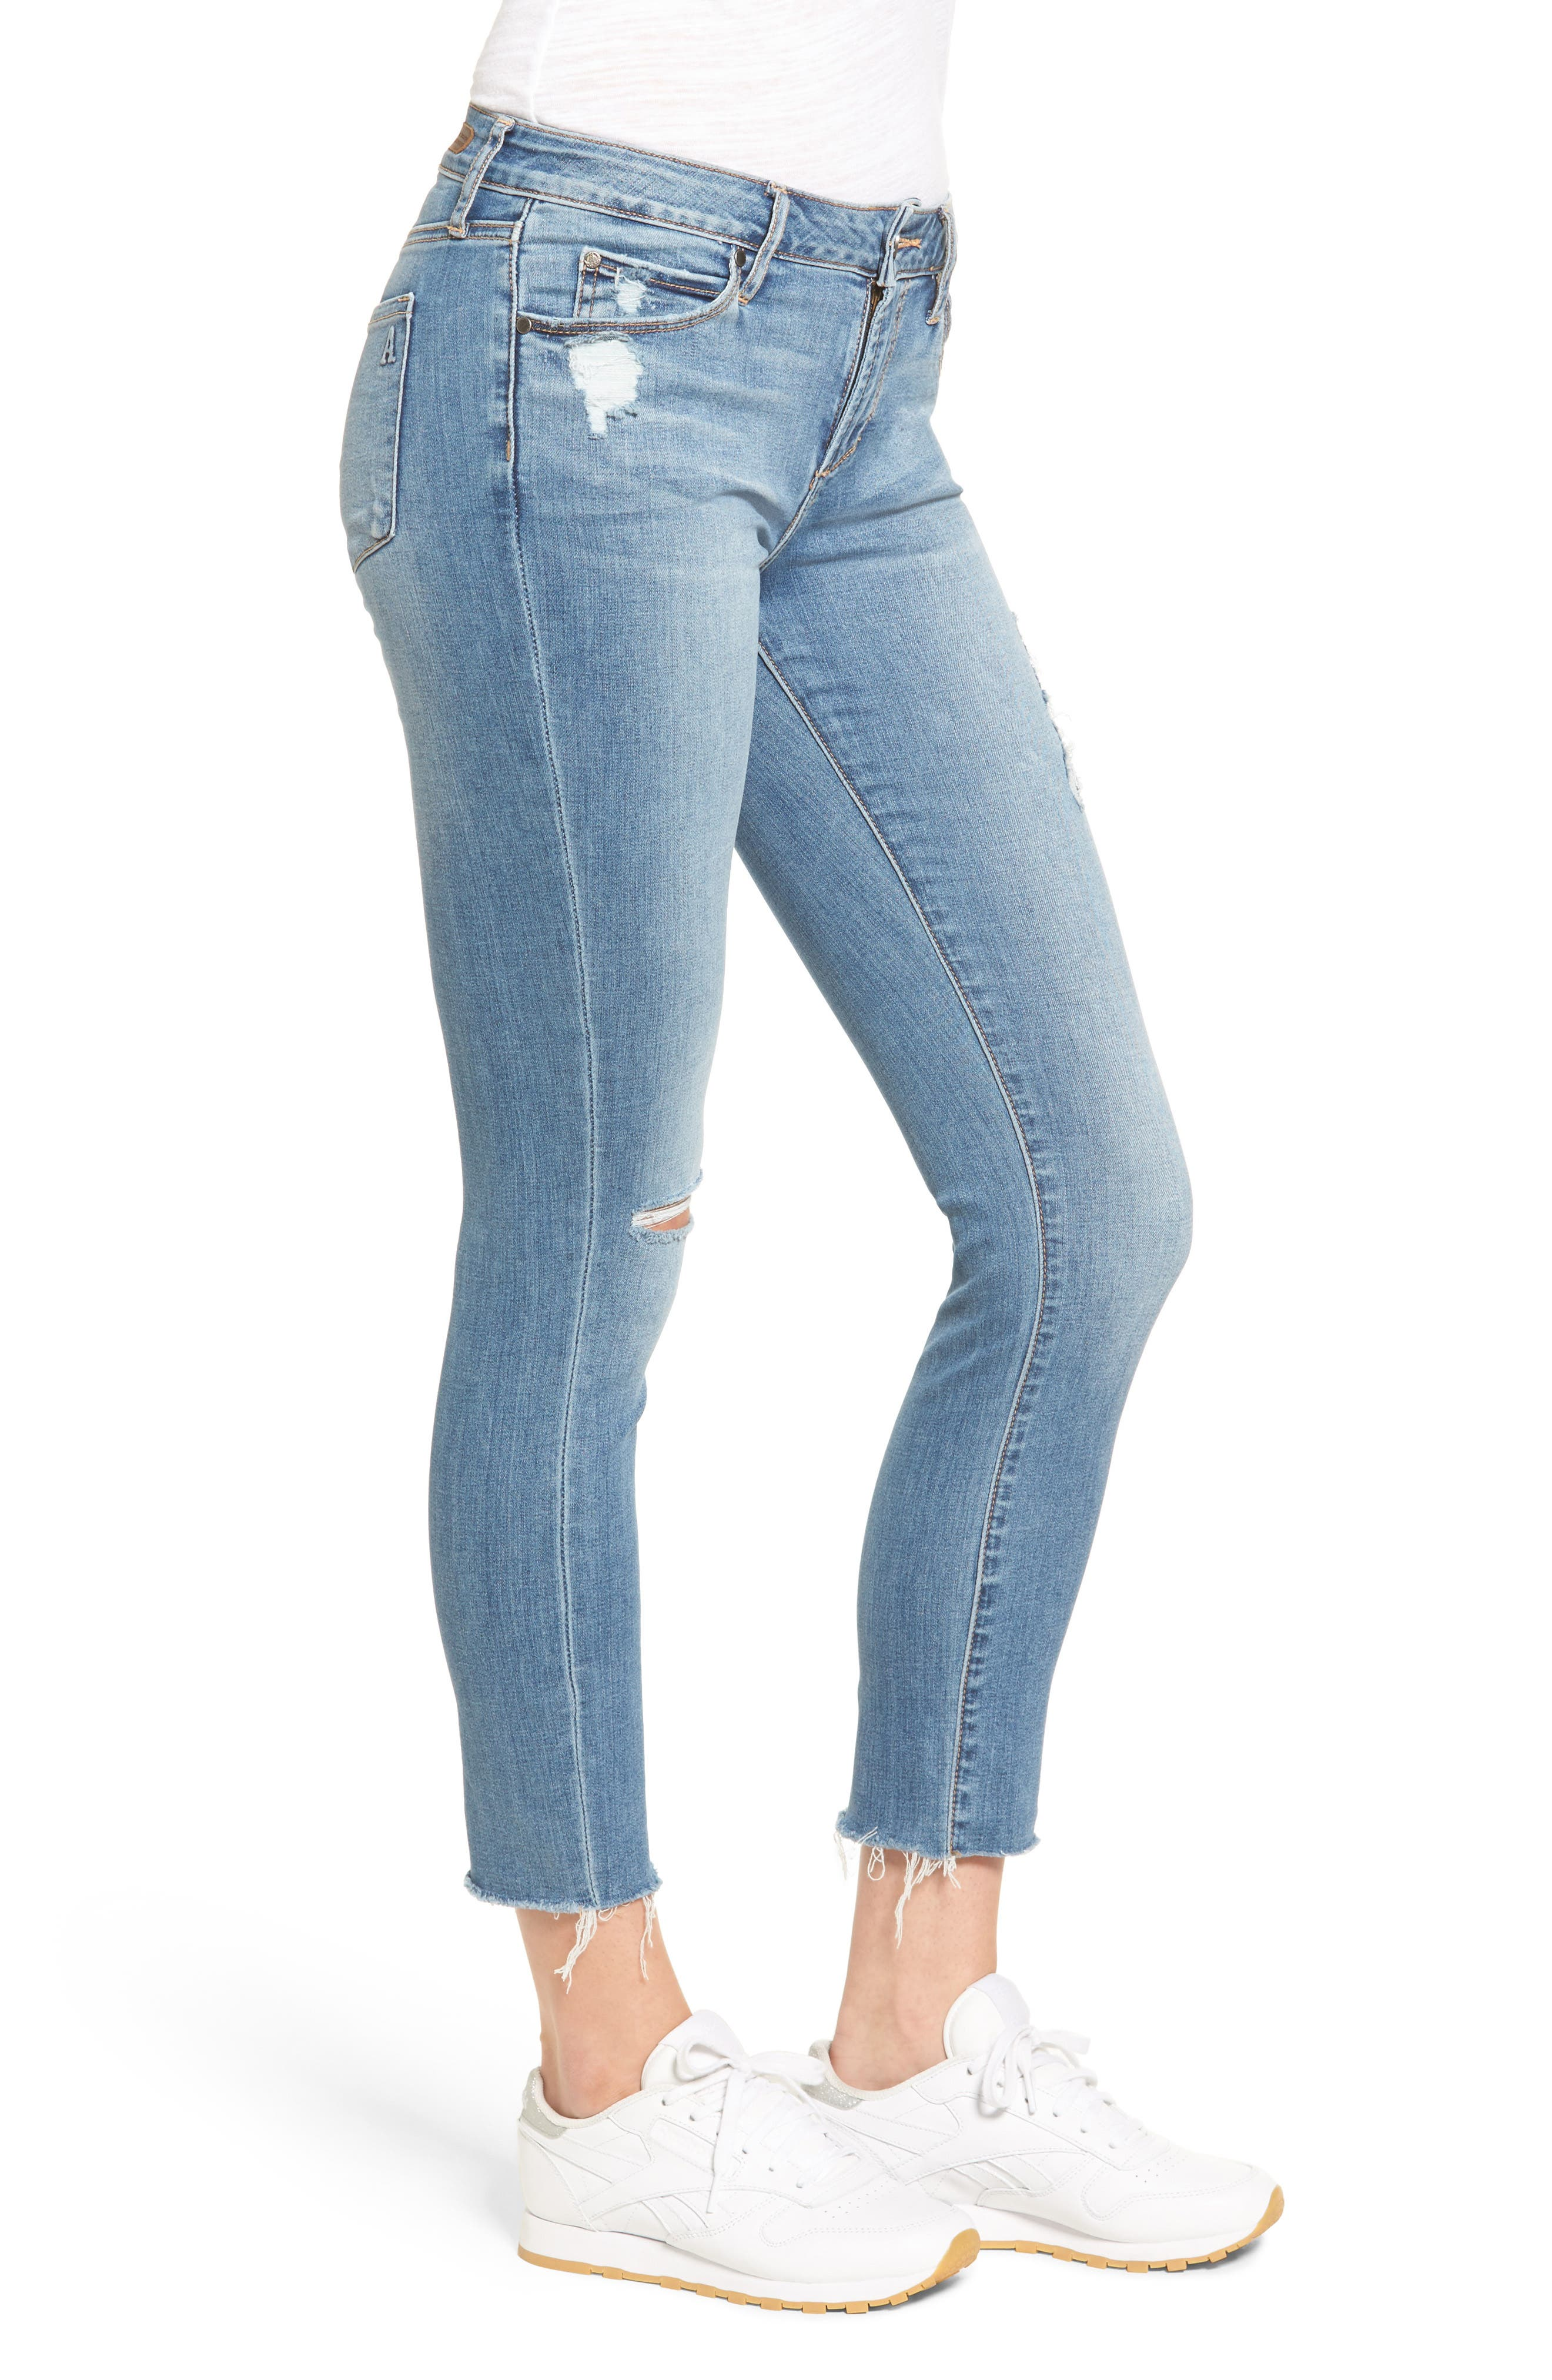 Carly Skinny Crop Jeans,                             Alternate thumbnail 3, color,                             400